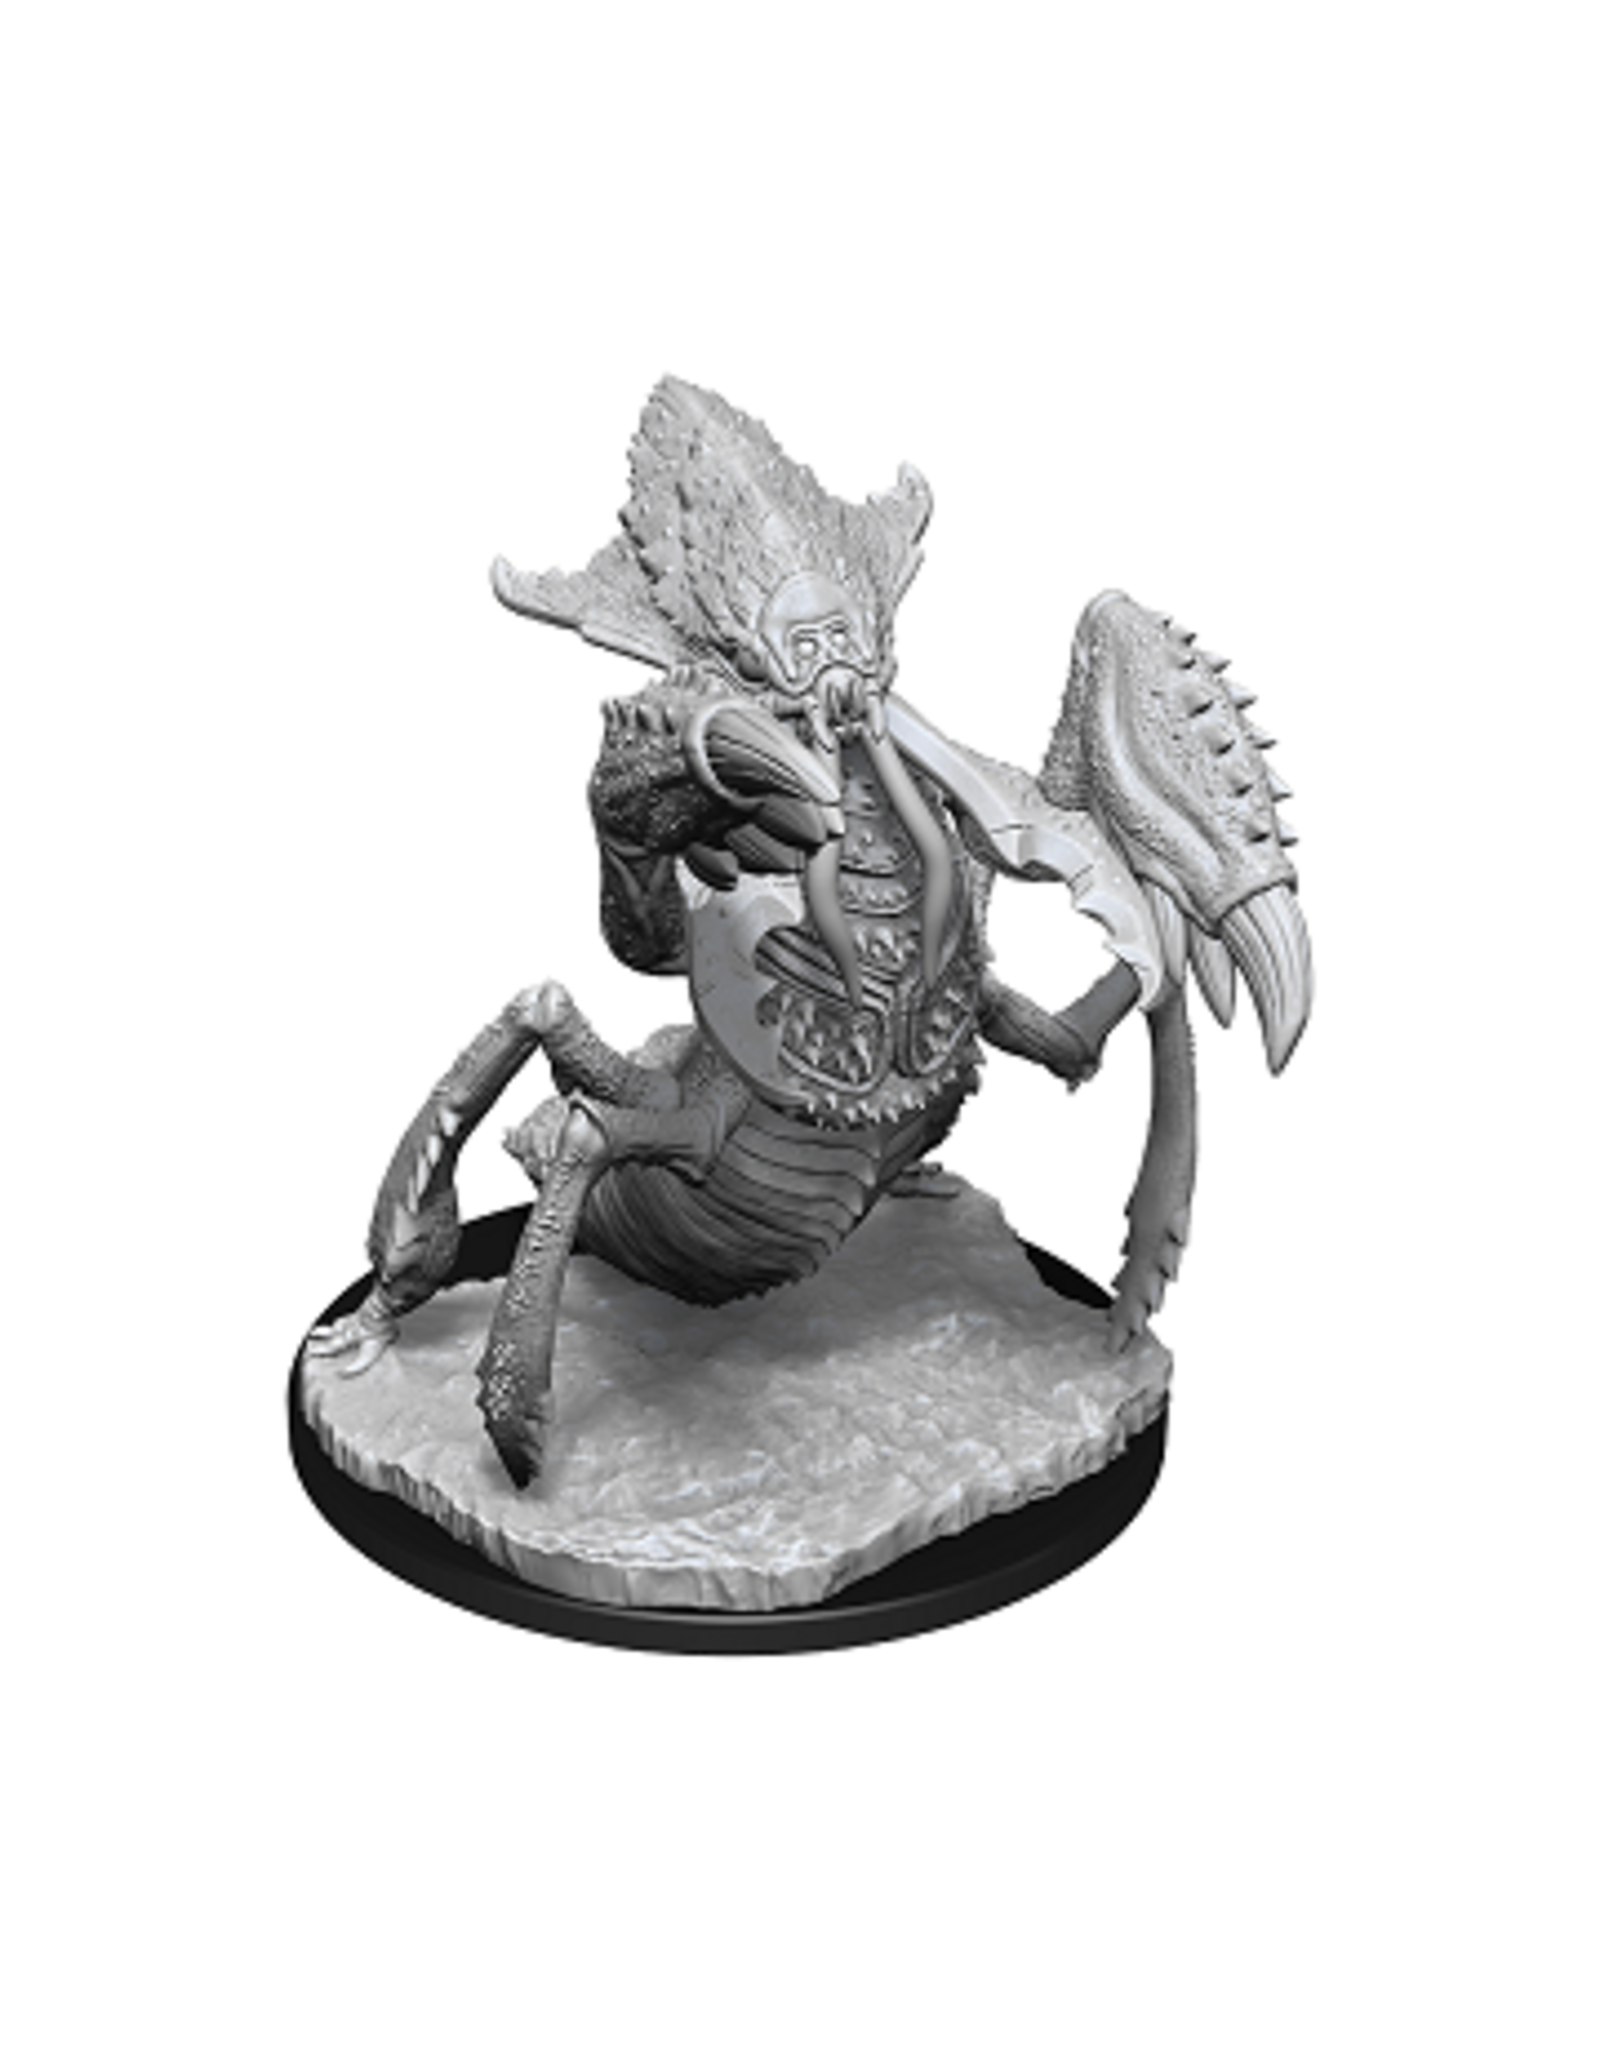 WizKids Dungeons and Dragons Unpainted Minis Wave 13 - Ankheg